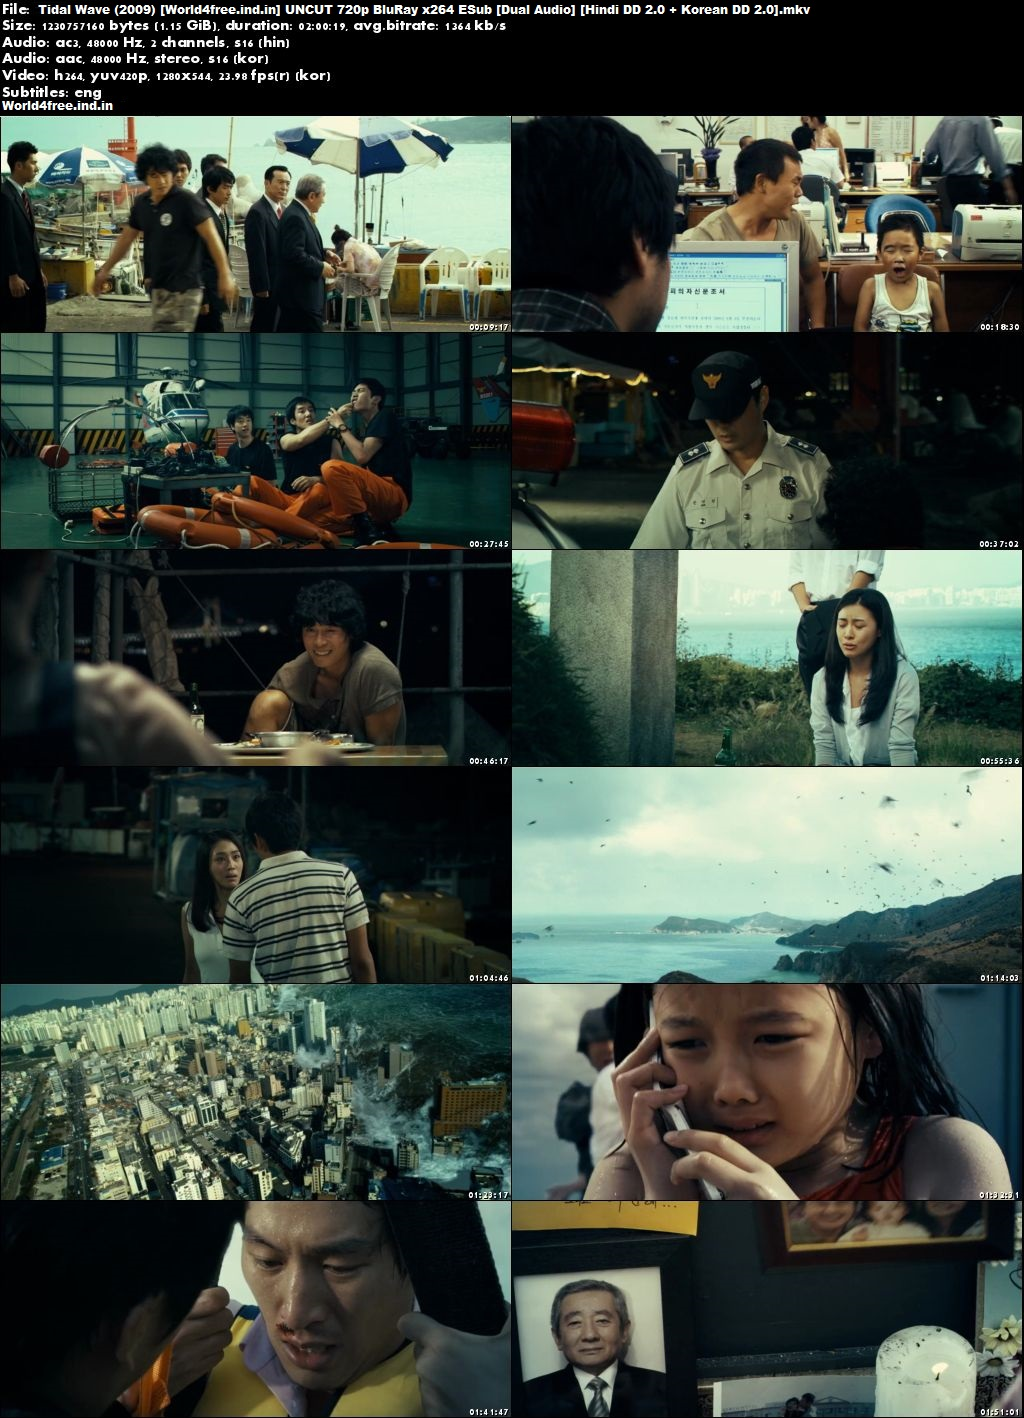 Tidal Wave 2009 world4freeus Korean Movie BRRip 720p Dual Audio Hindi